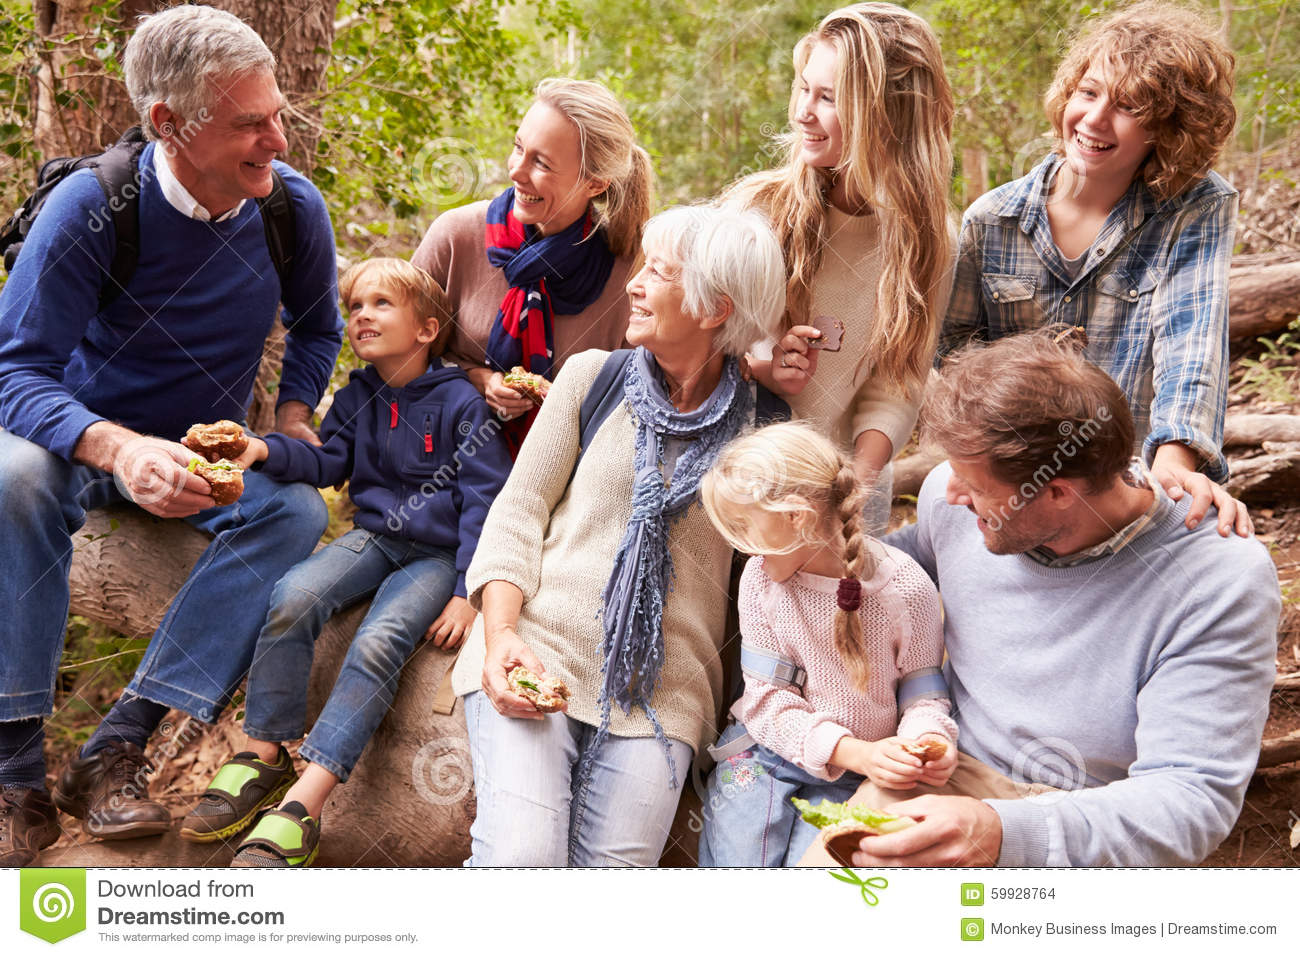 Multi-generation family with teens eating outdoors together